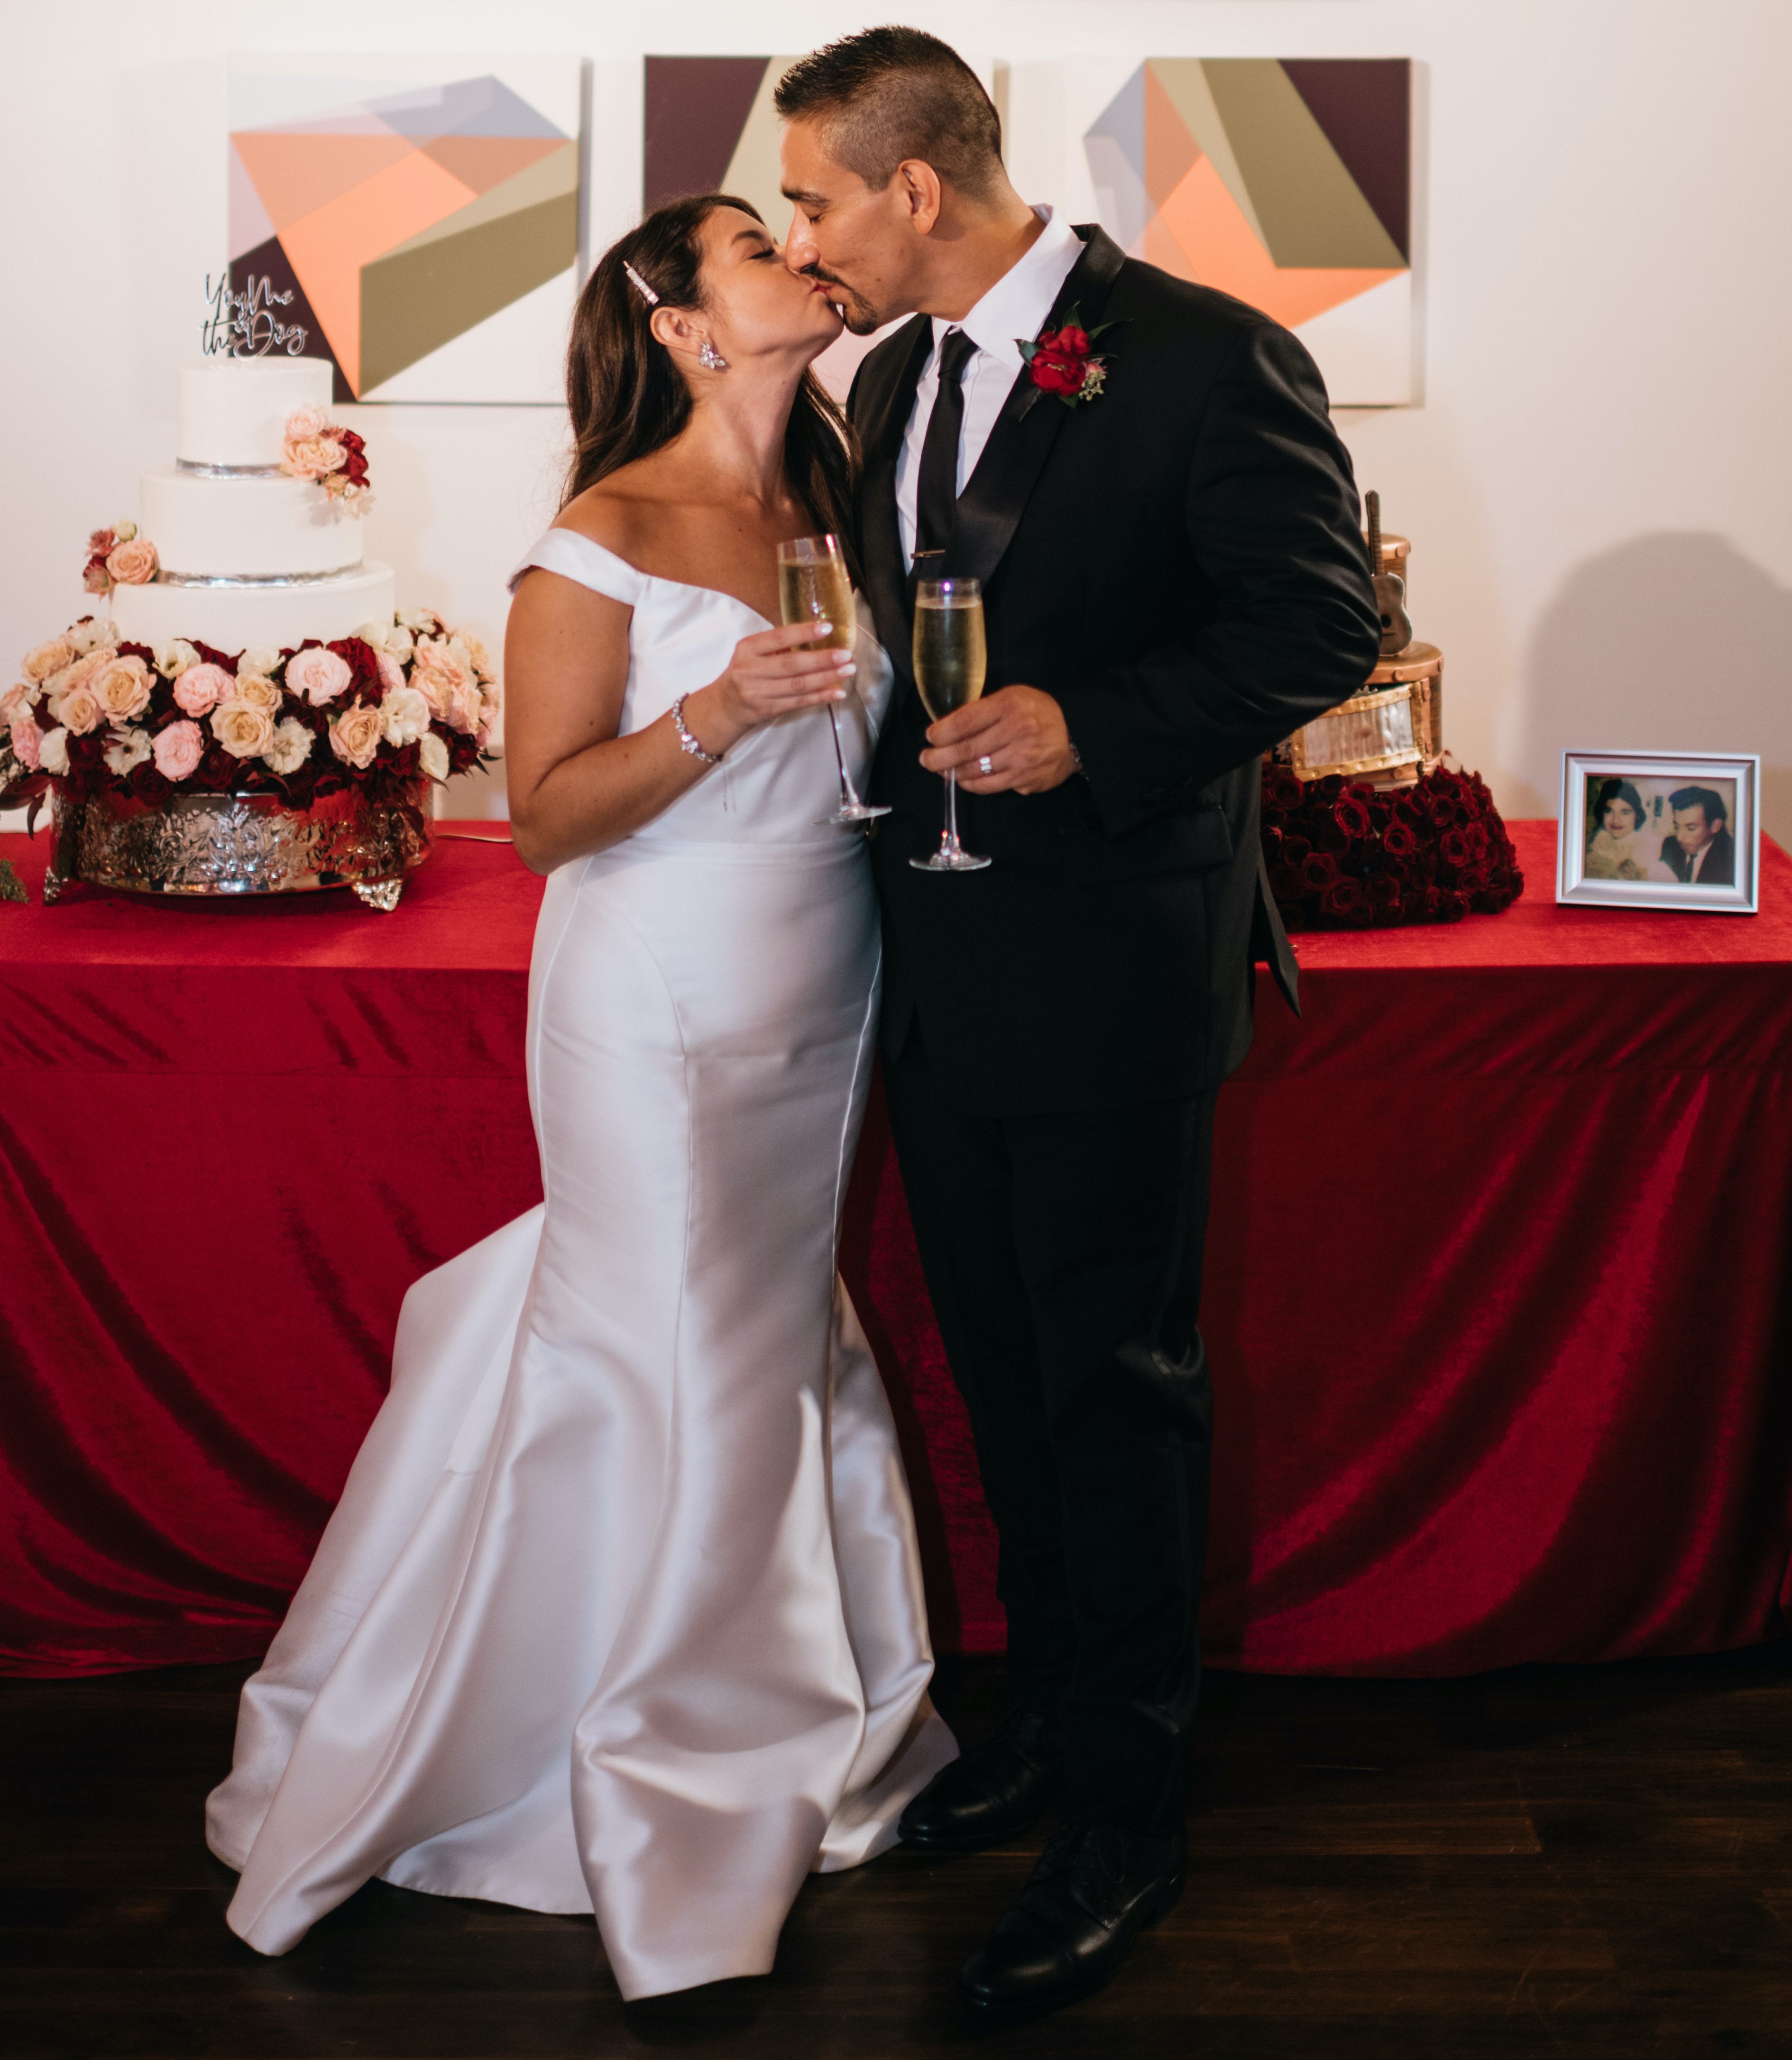 The bride and groom hold champagne as they kiss in front of their wedding cakes.